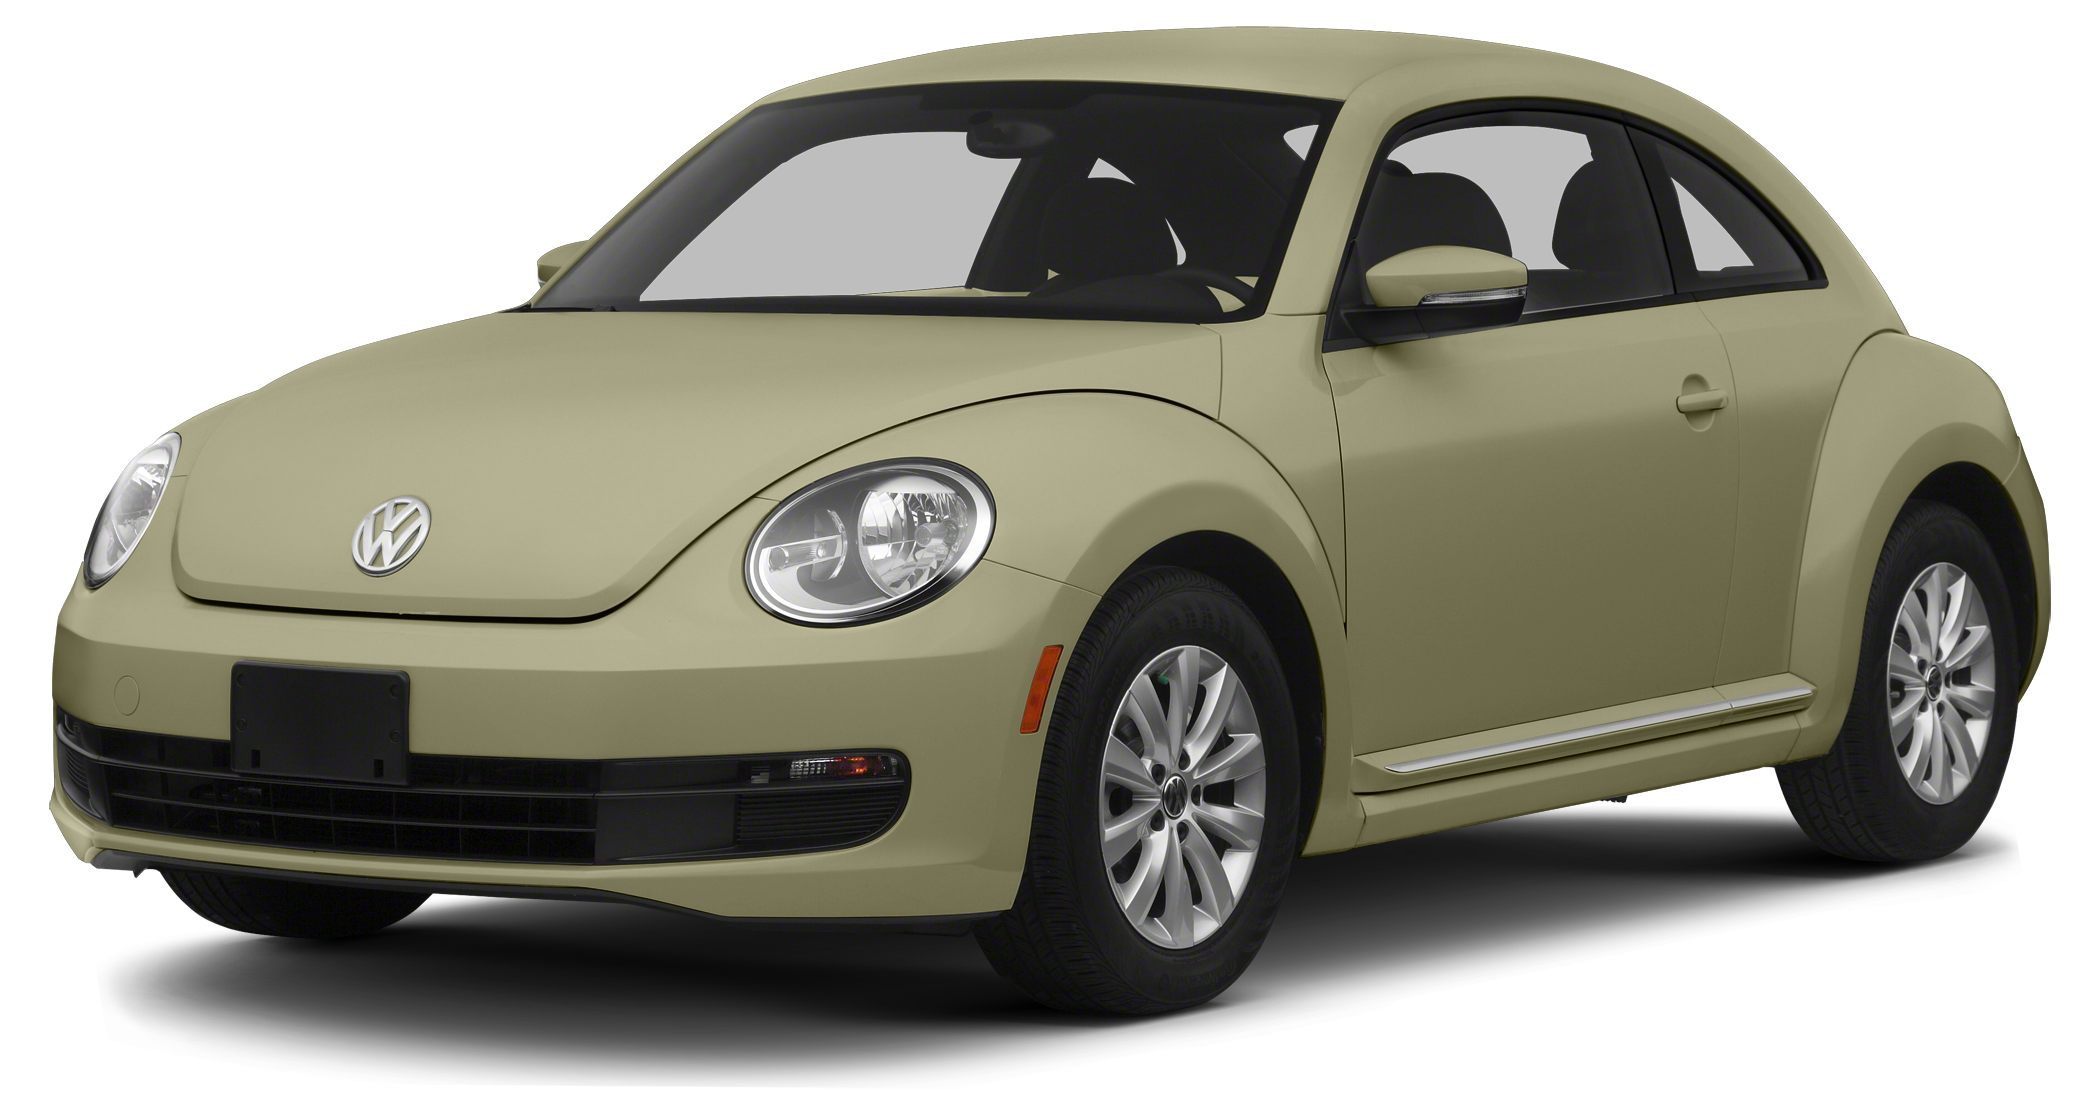 2013 Volkswagen Beetle 25 Other features include Power locks Power windows Auto Air condition